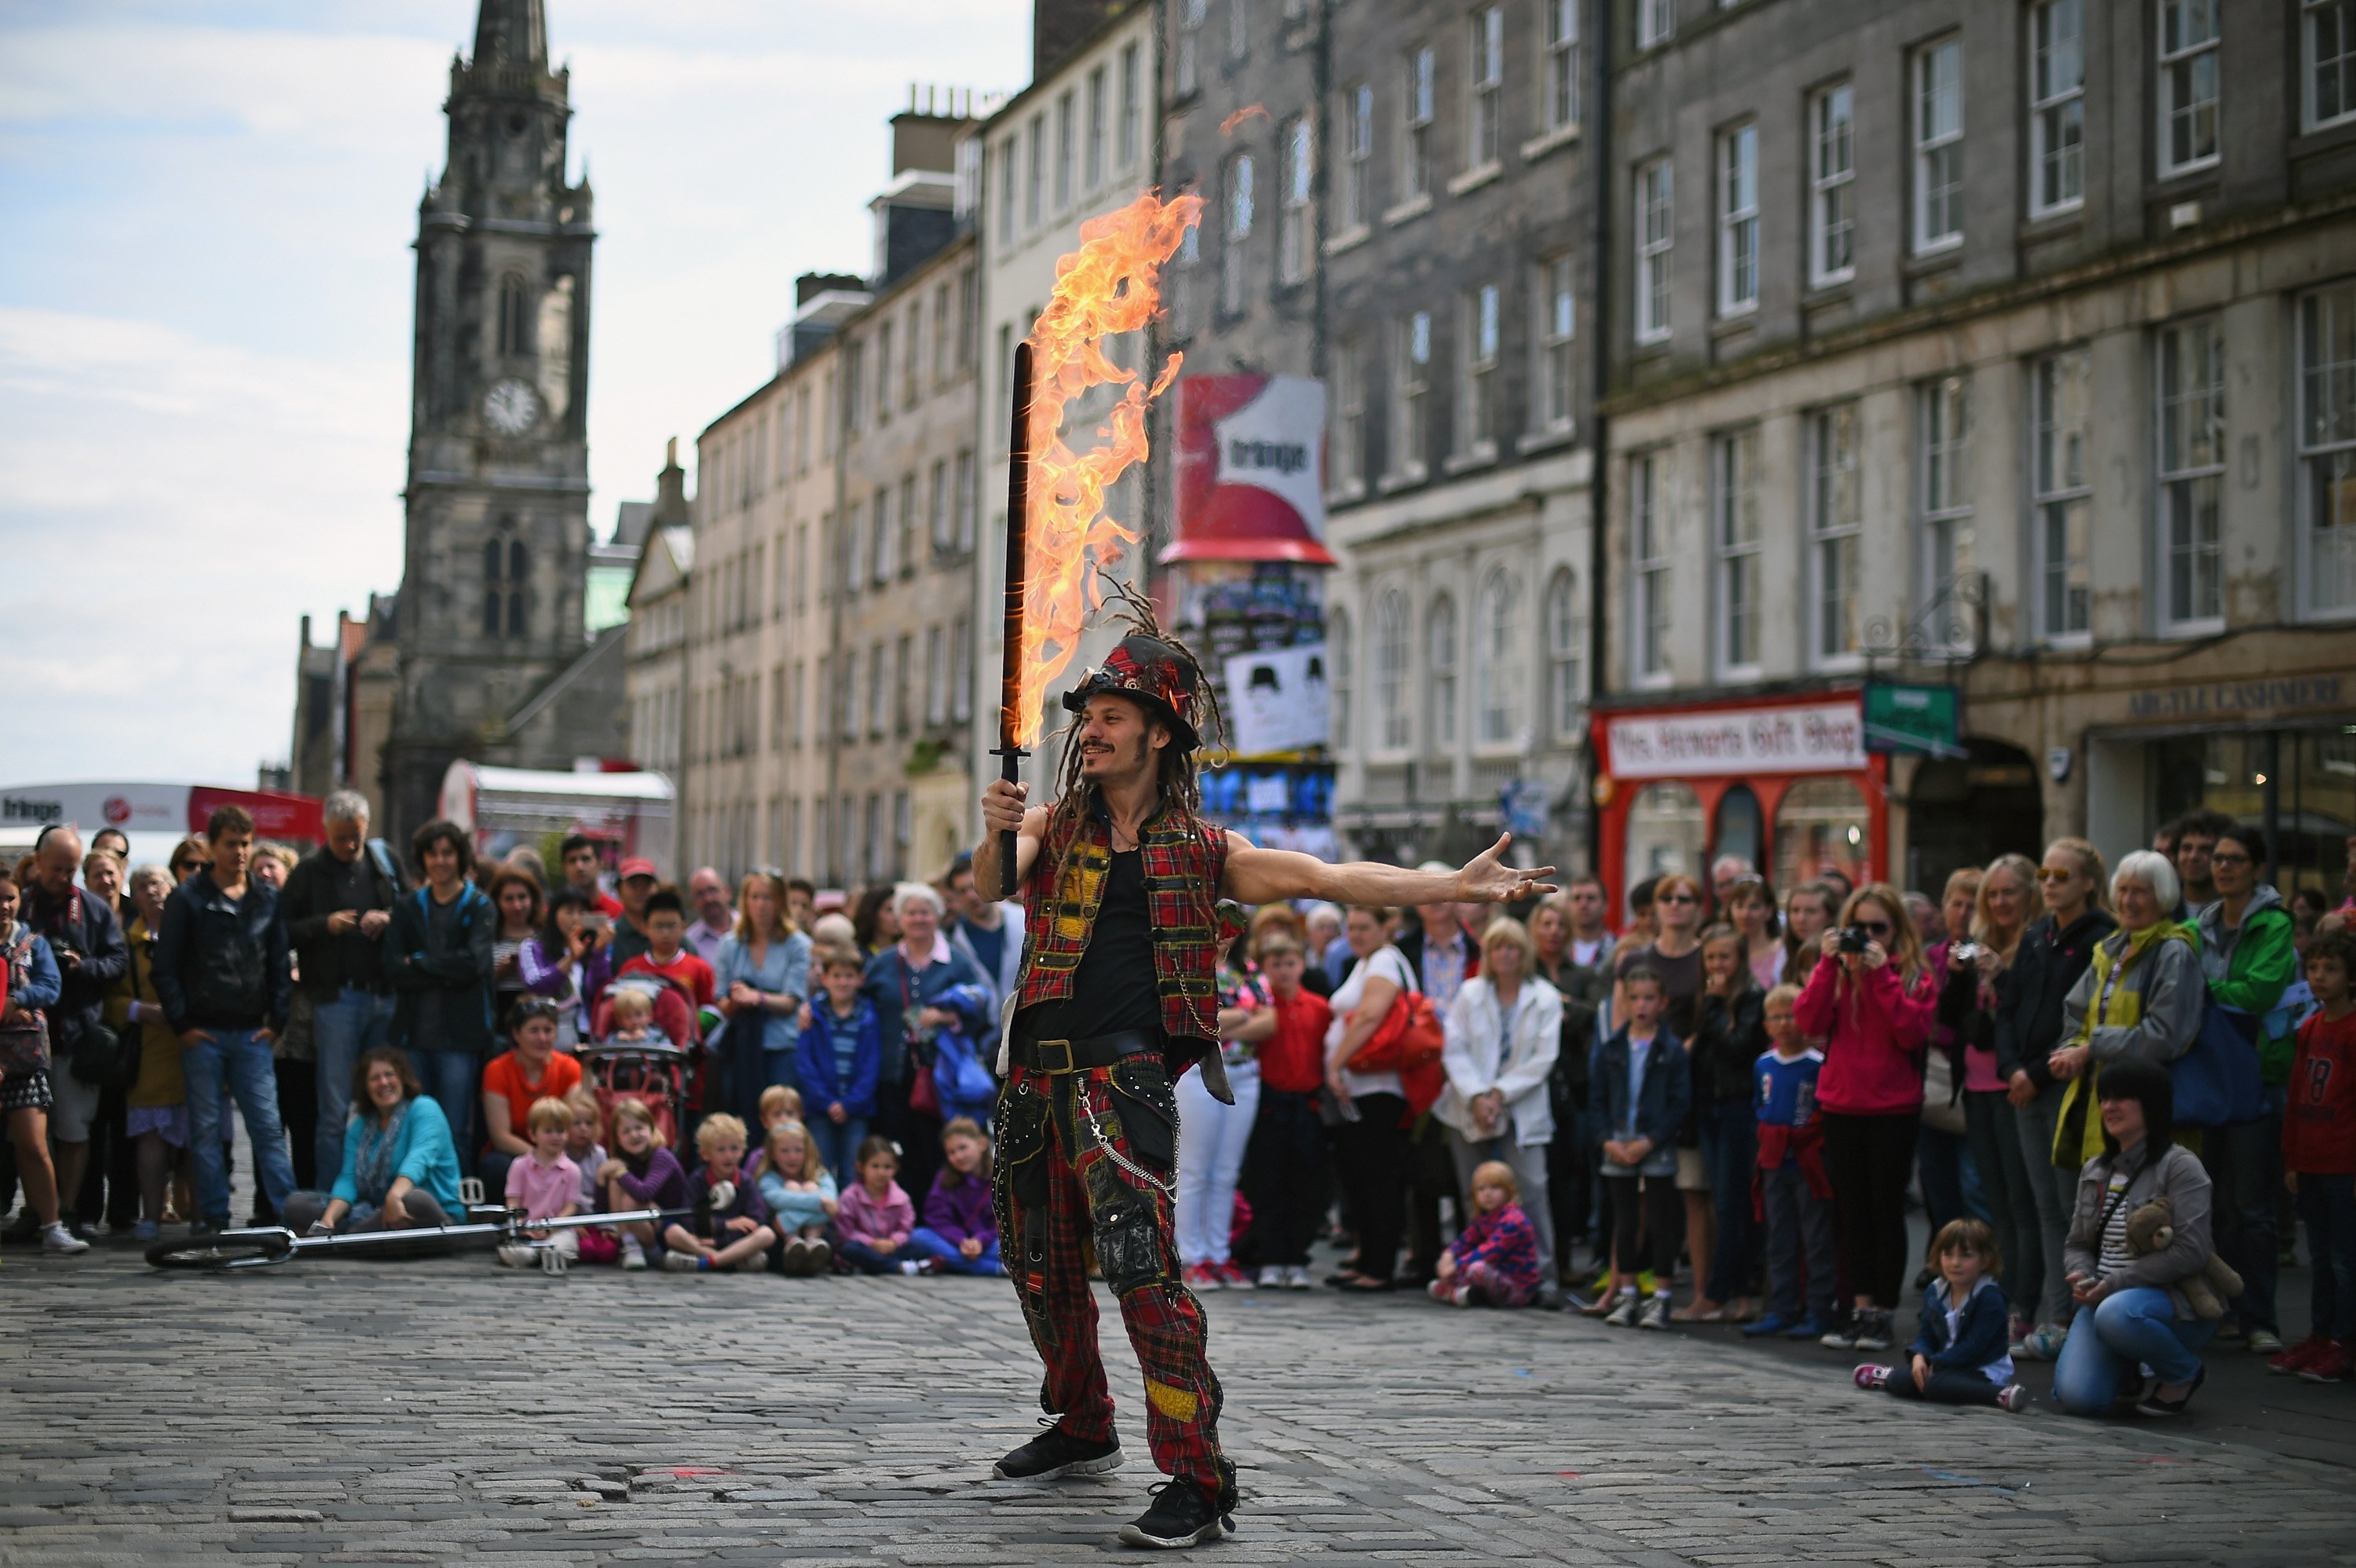 Edinburgh Festival Fringe entertainers perform on the Royal Mile on August 14, 2014 in Edinburgh, Scotland. The largest performing arts festival in the world, this year's festival hosts more than 3,000 shows in nearly 300 venues across the city.